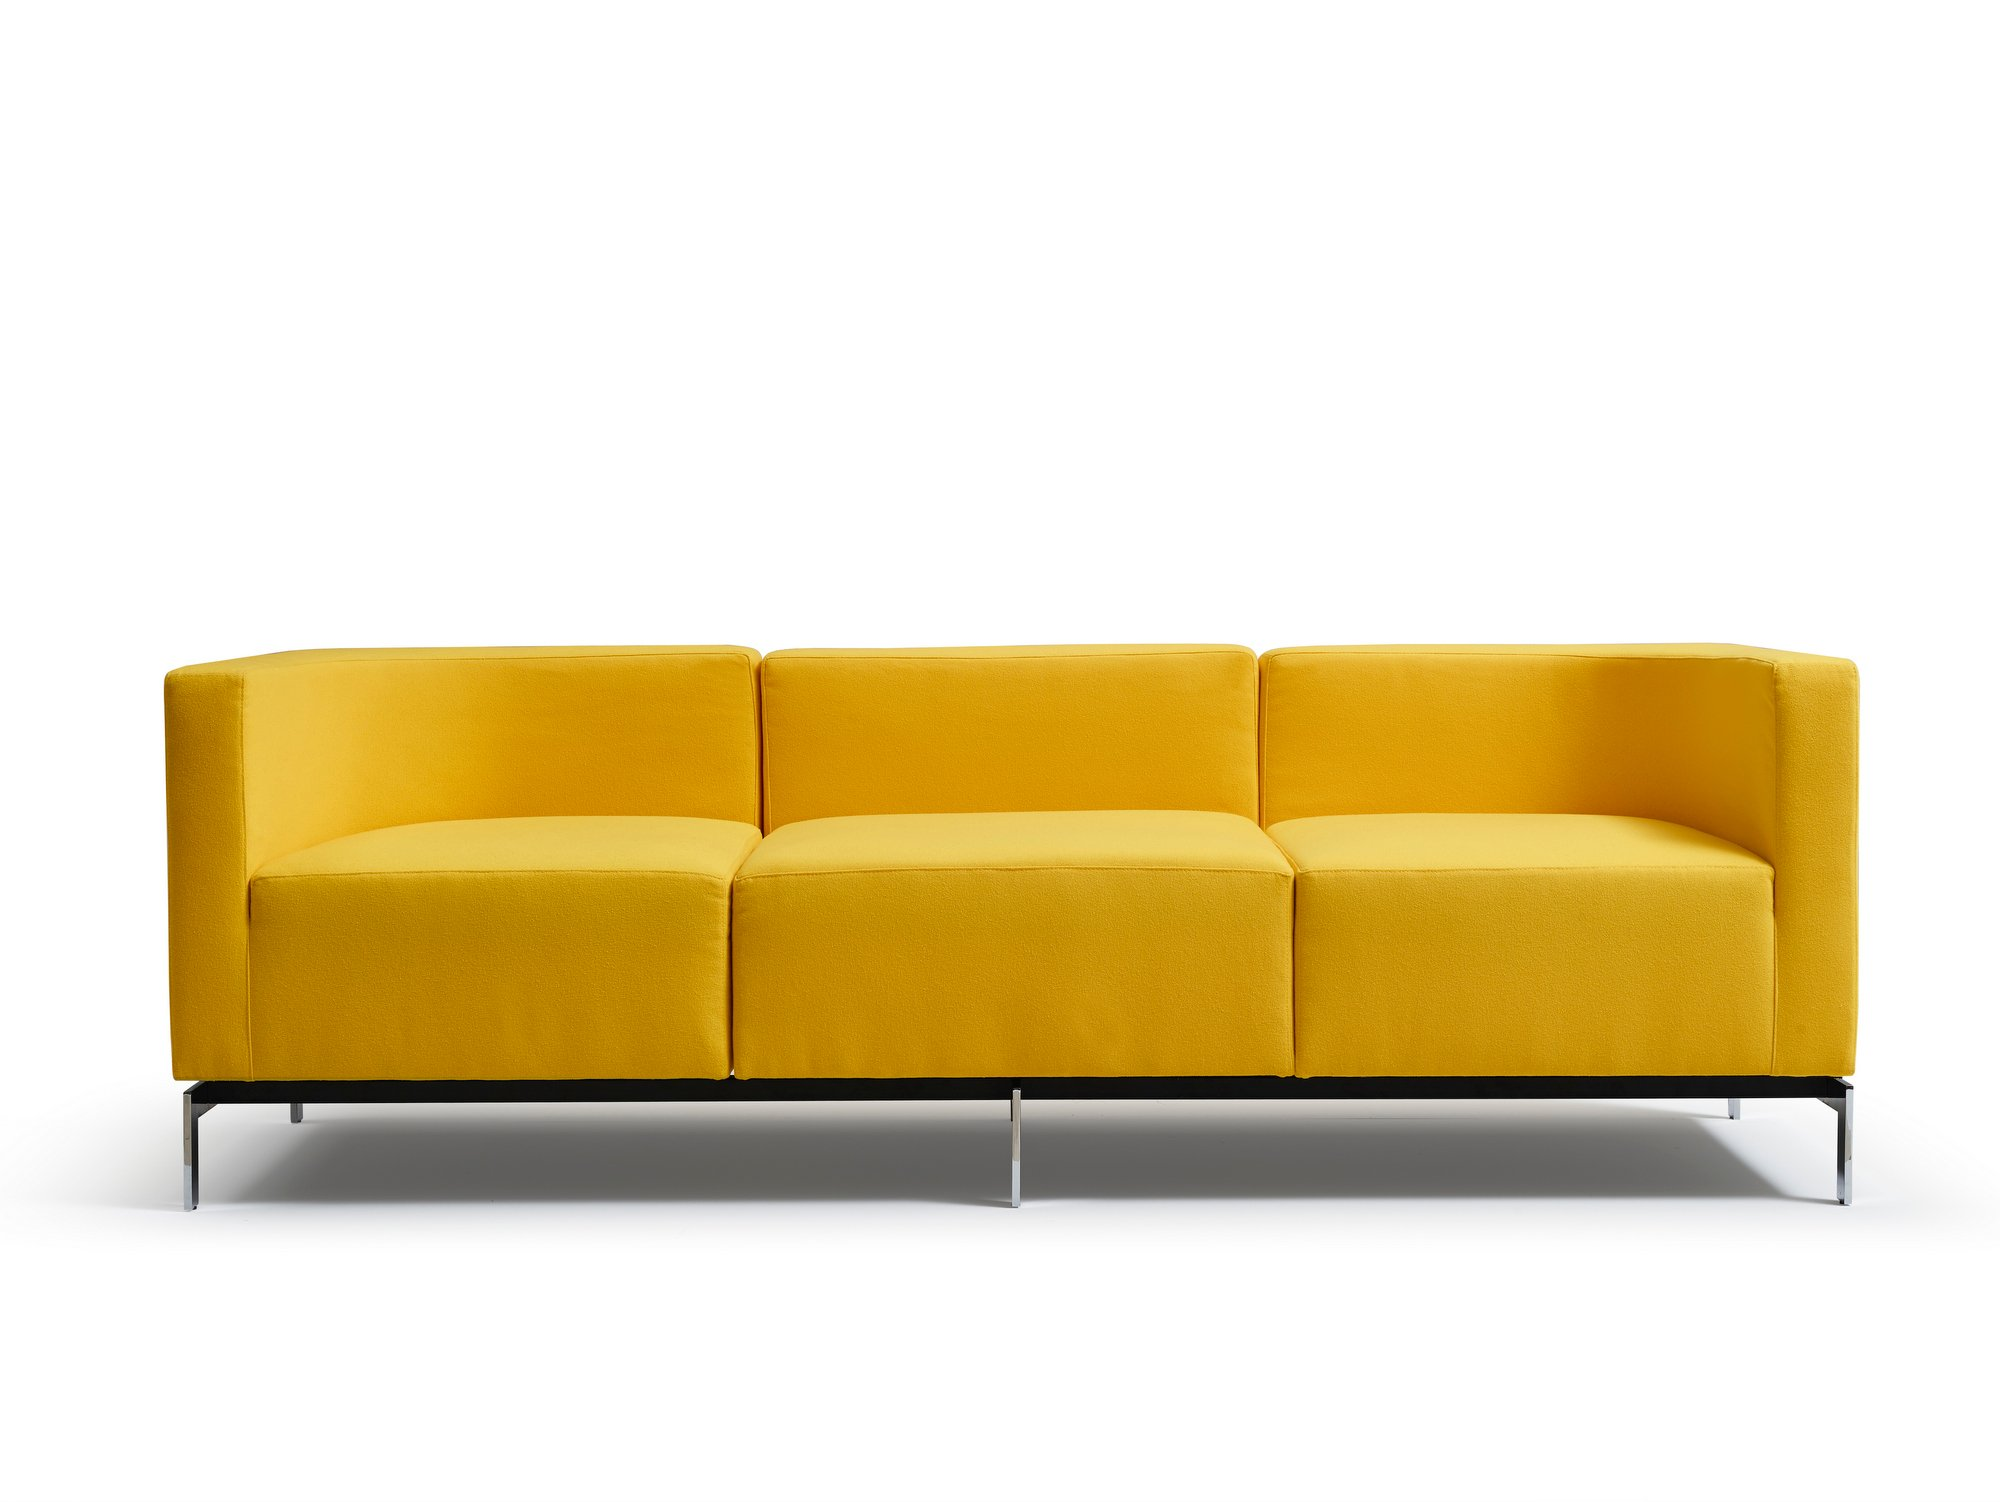 Sectional upholstered sofa ISCHIA By Tacchini design PearsonLloyd